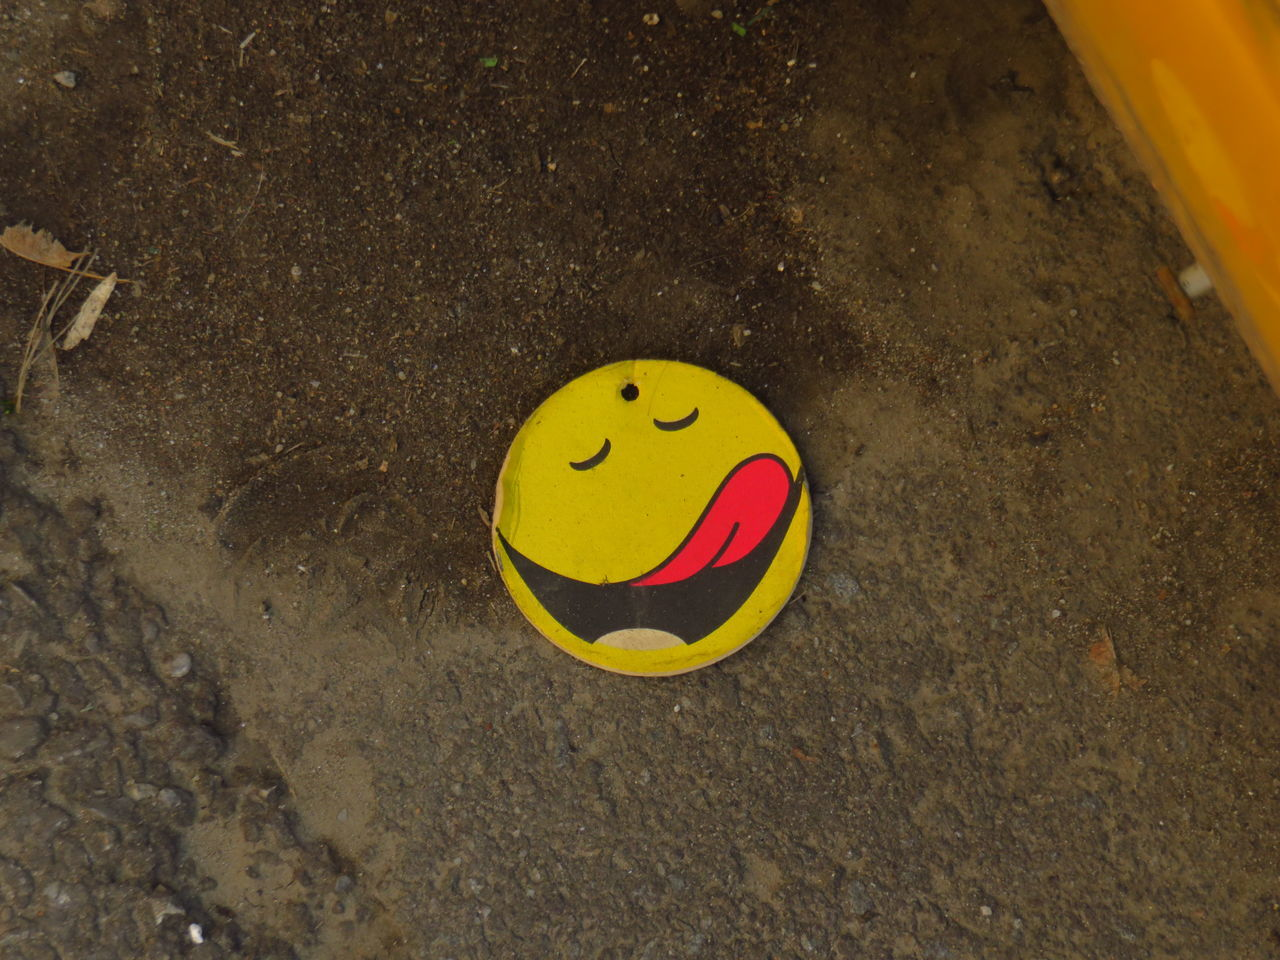 Anthropomorphic Anthropomorphic Face Anthropomorphic Smiley Face Close-up Day Drawing - Art Product Full Frame No People Outdoors Smiley Face Yellow